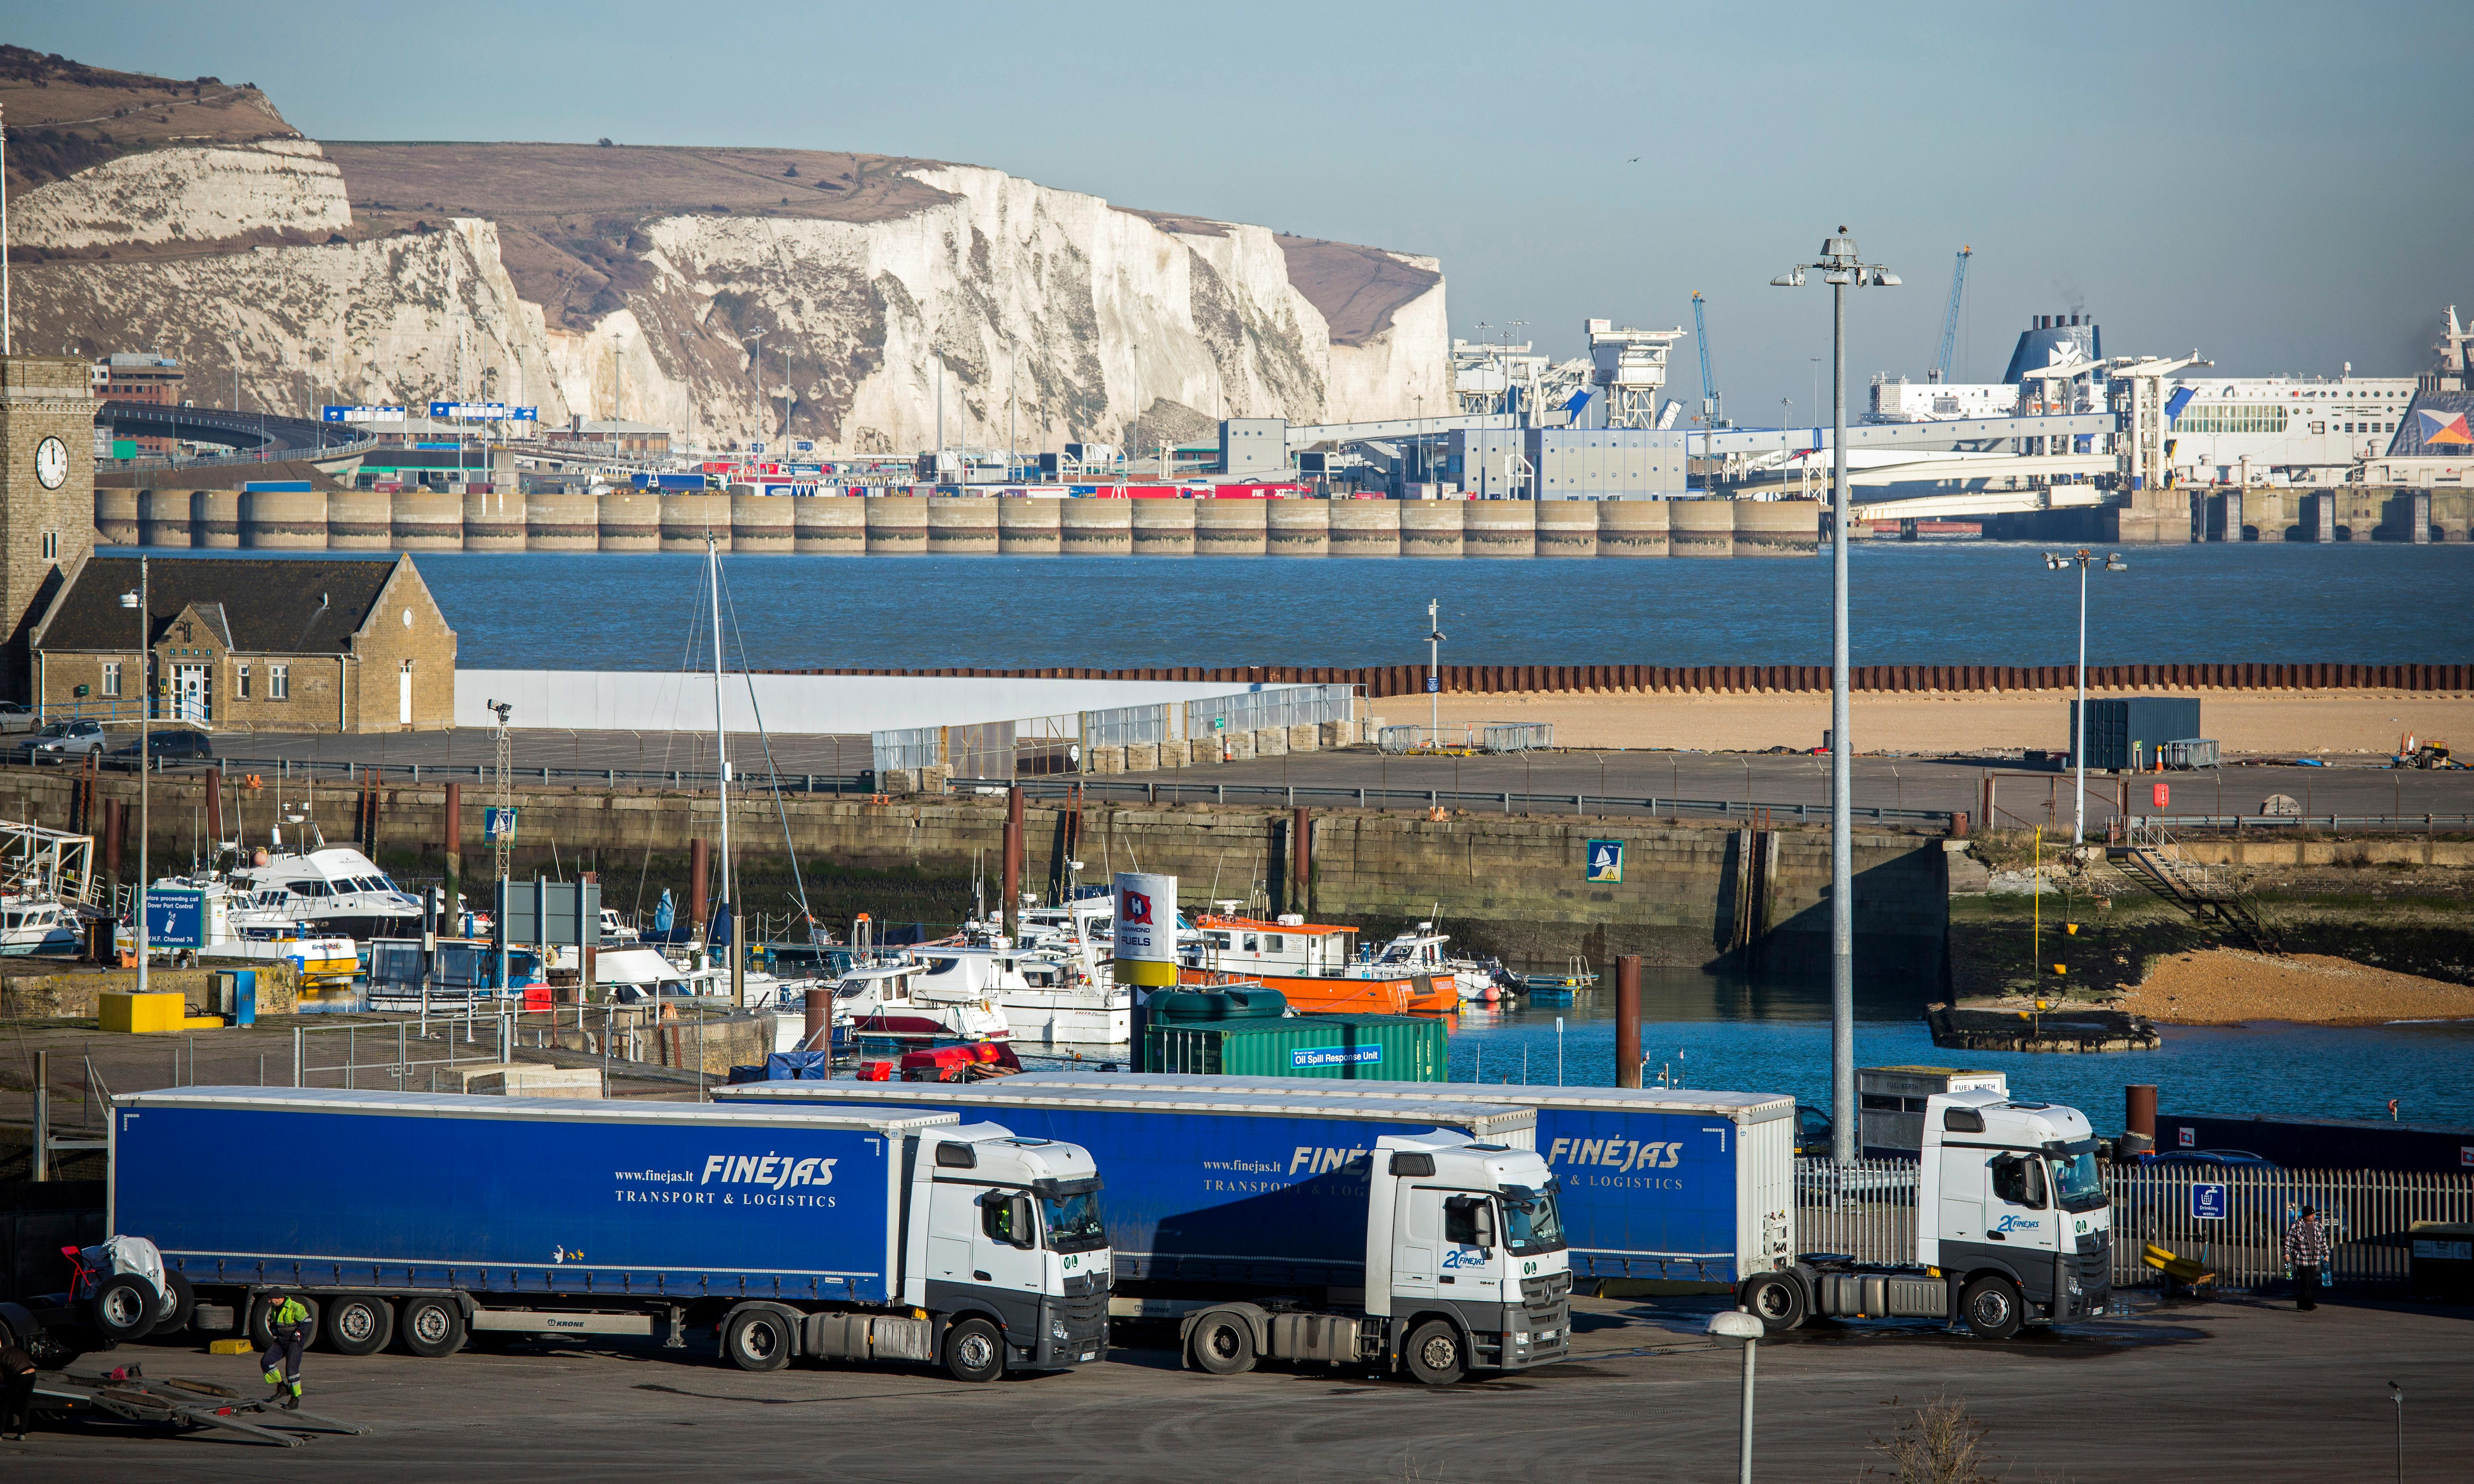 No-deal Brexit ferry company owns no ships and has never run Channel service